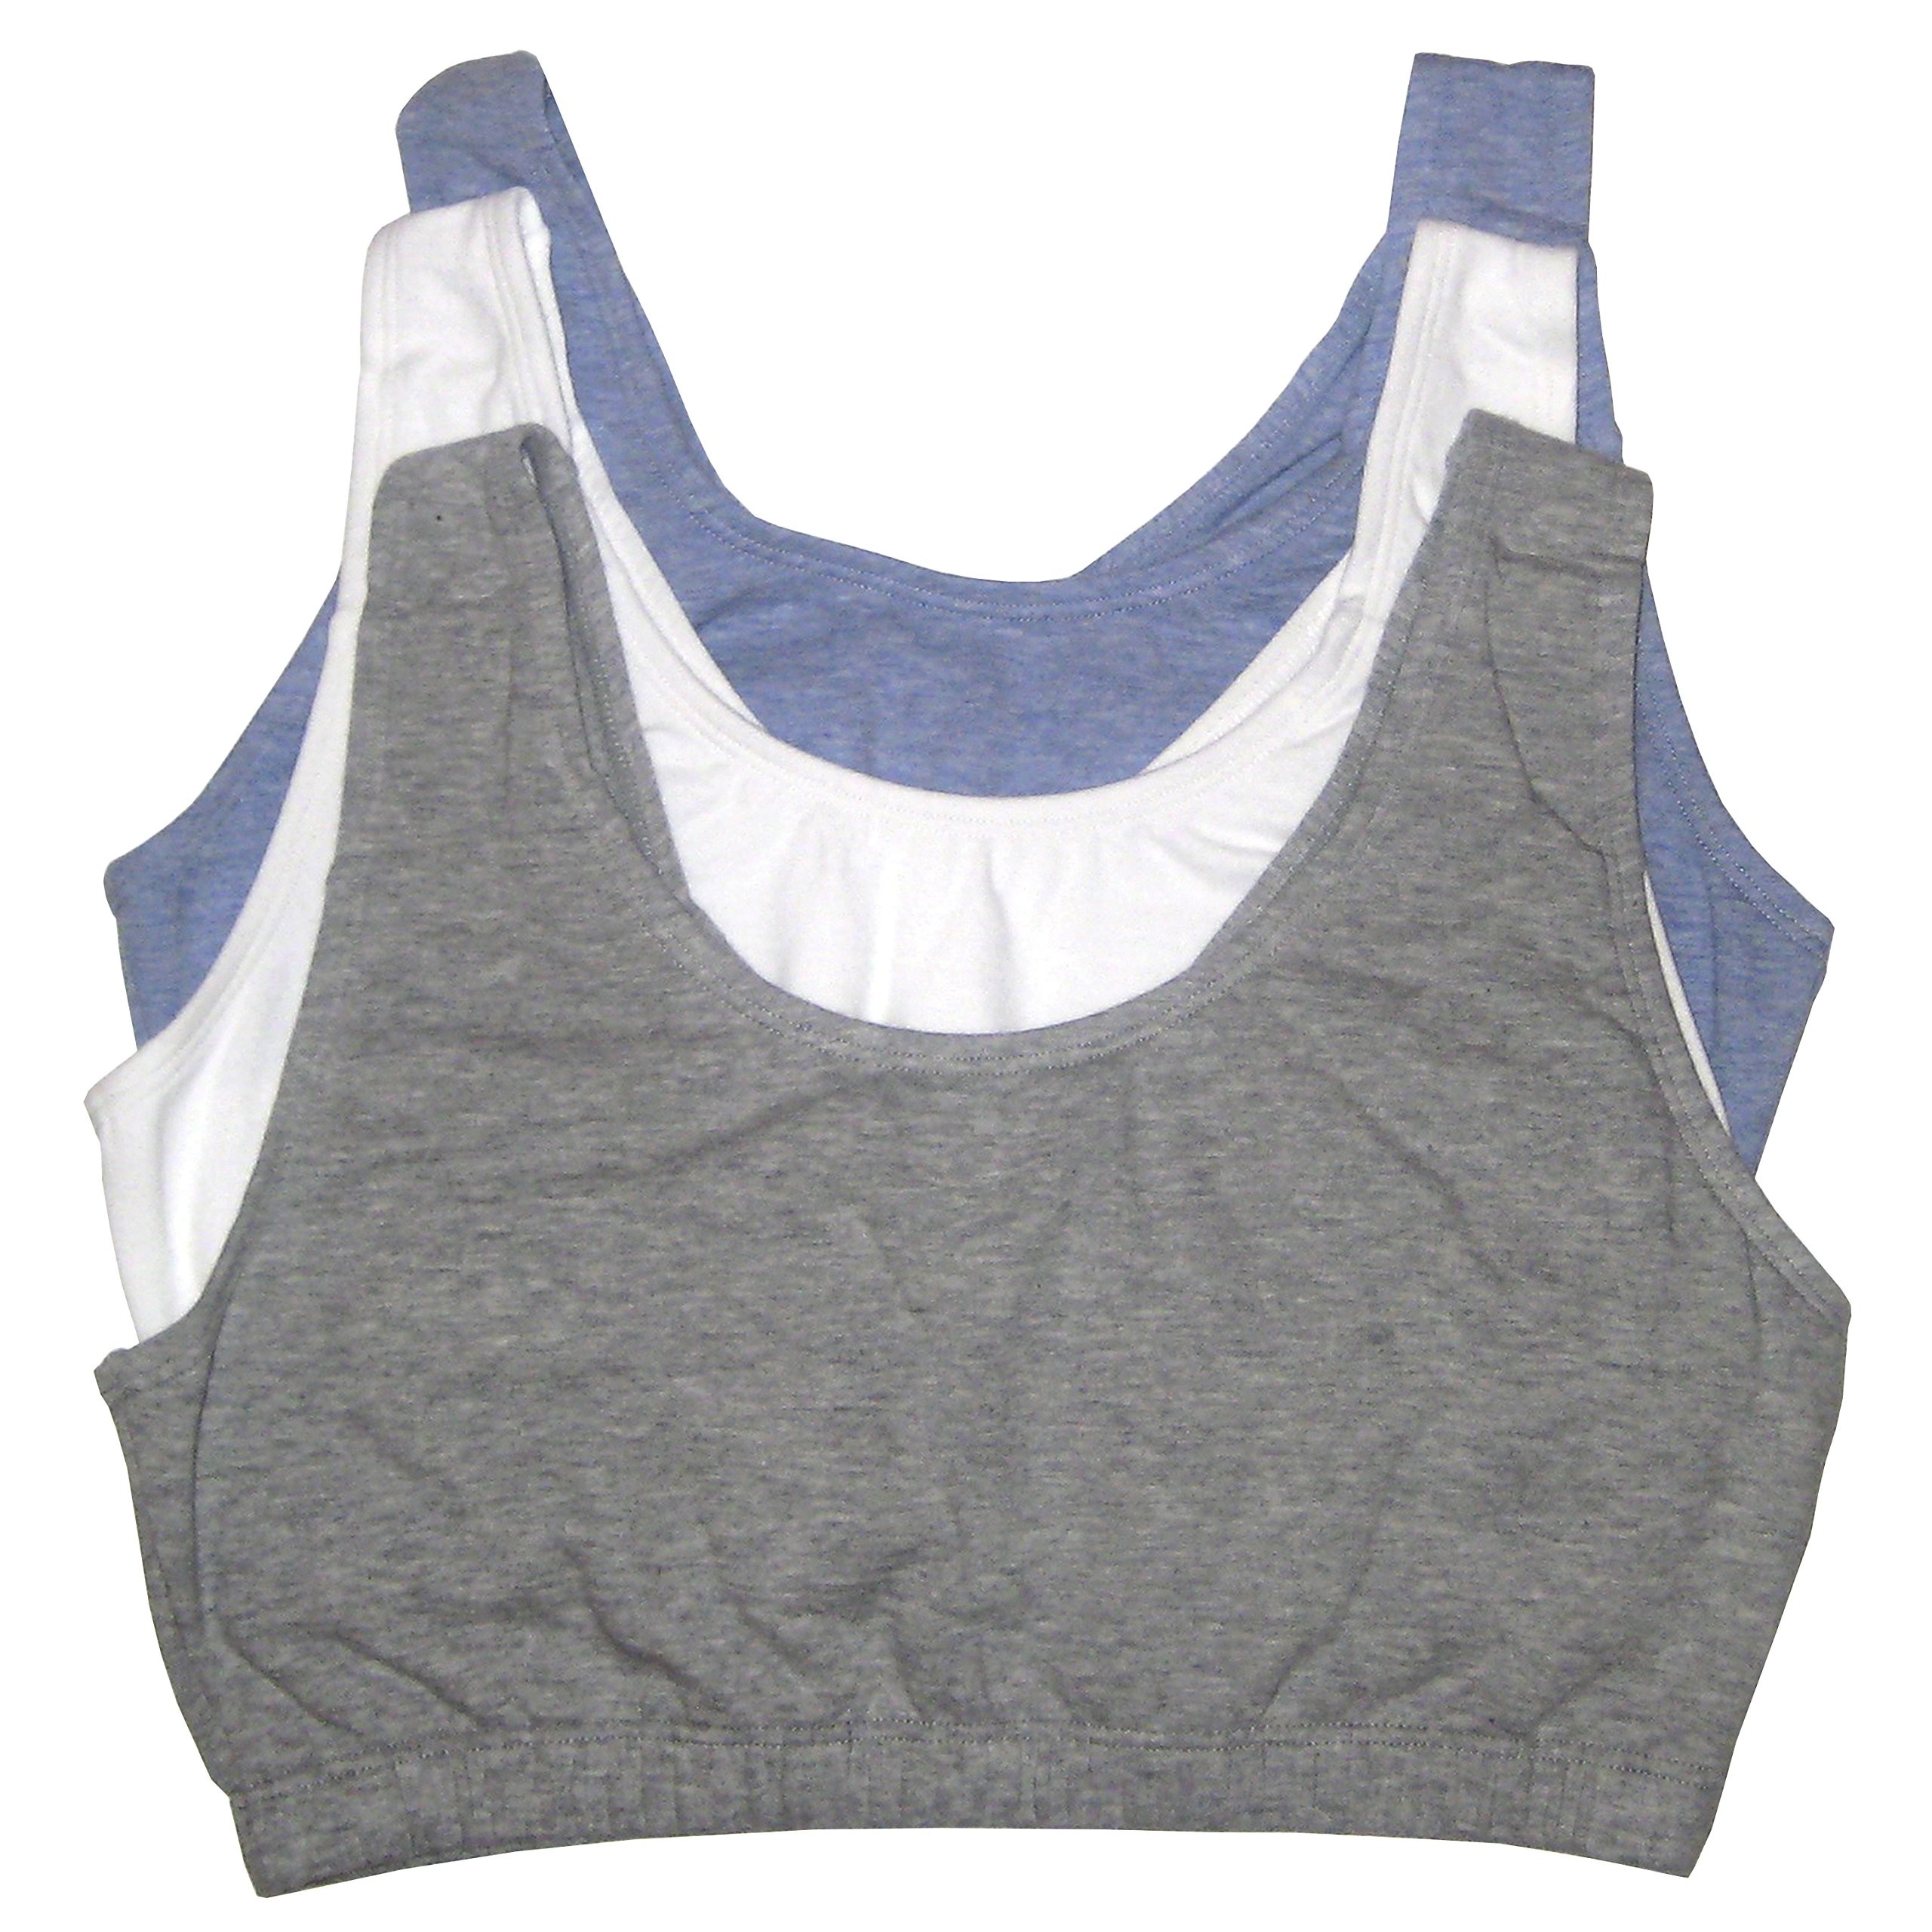 Fruit of the Loom Women's 3 PR Built-Up Sportsbra, Grey Heather/White/Blue Heather, Size 38